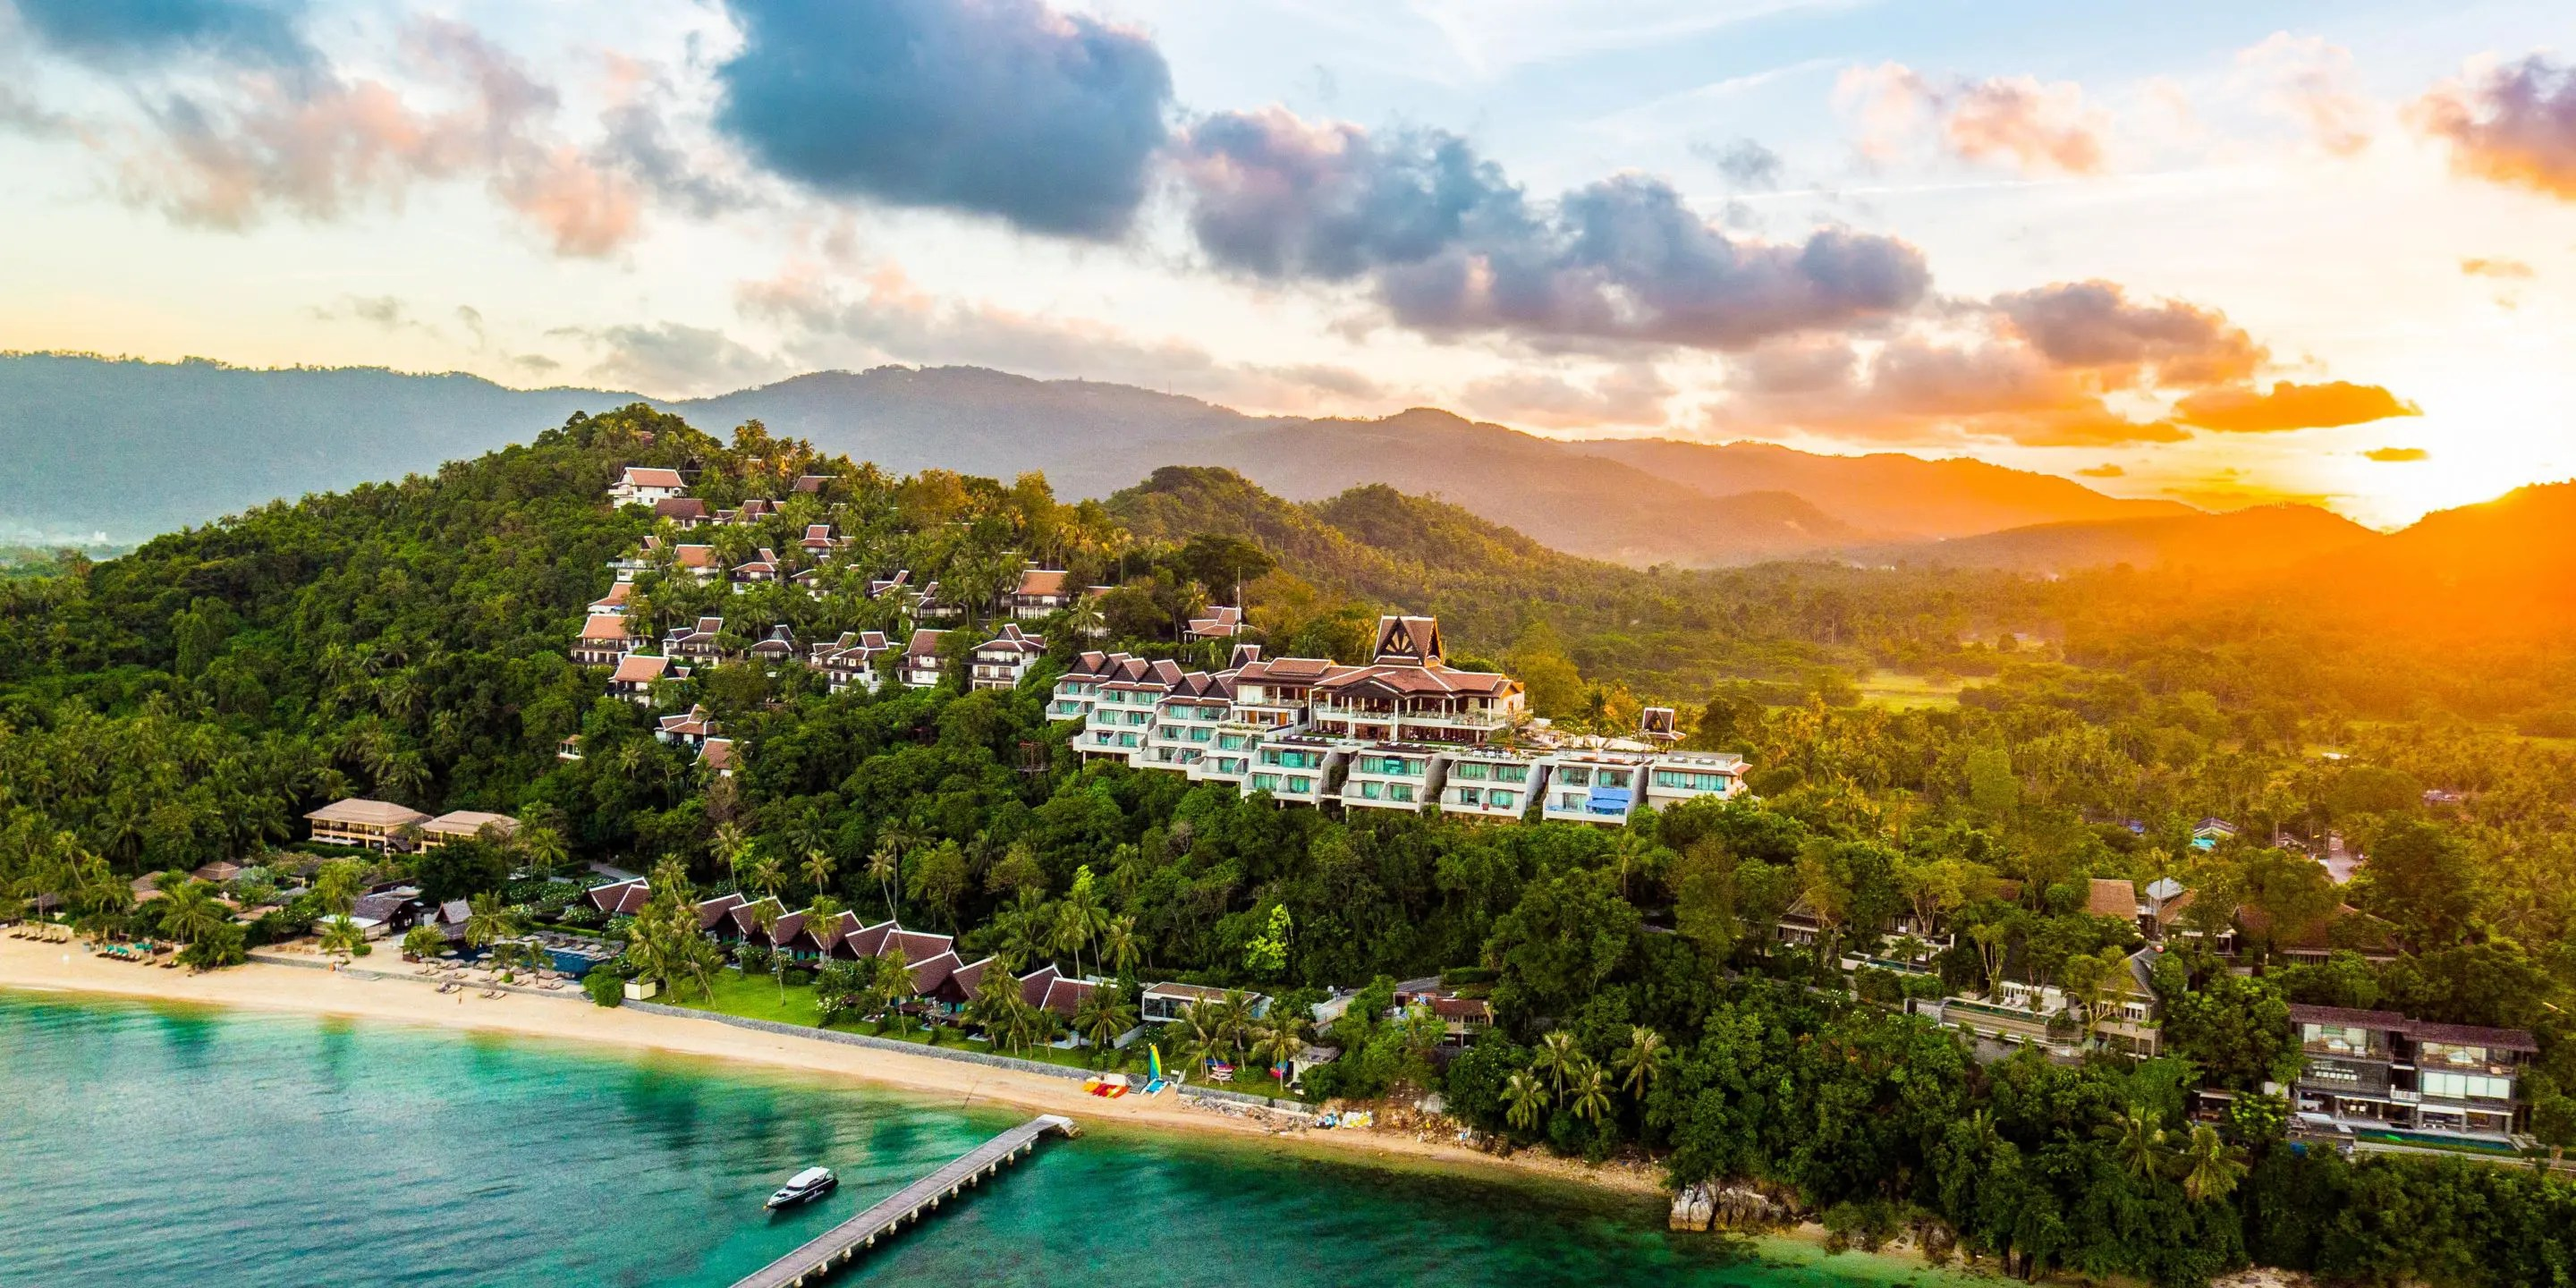 Intercontinental Koh Samui wedding venue